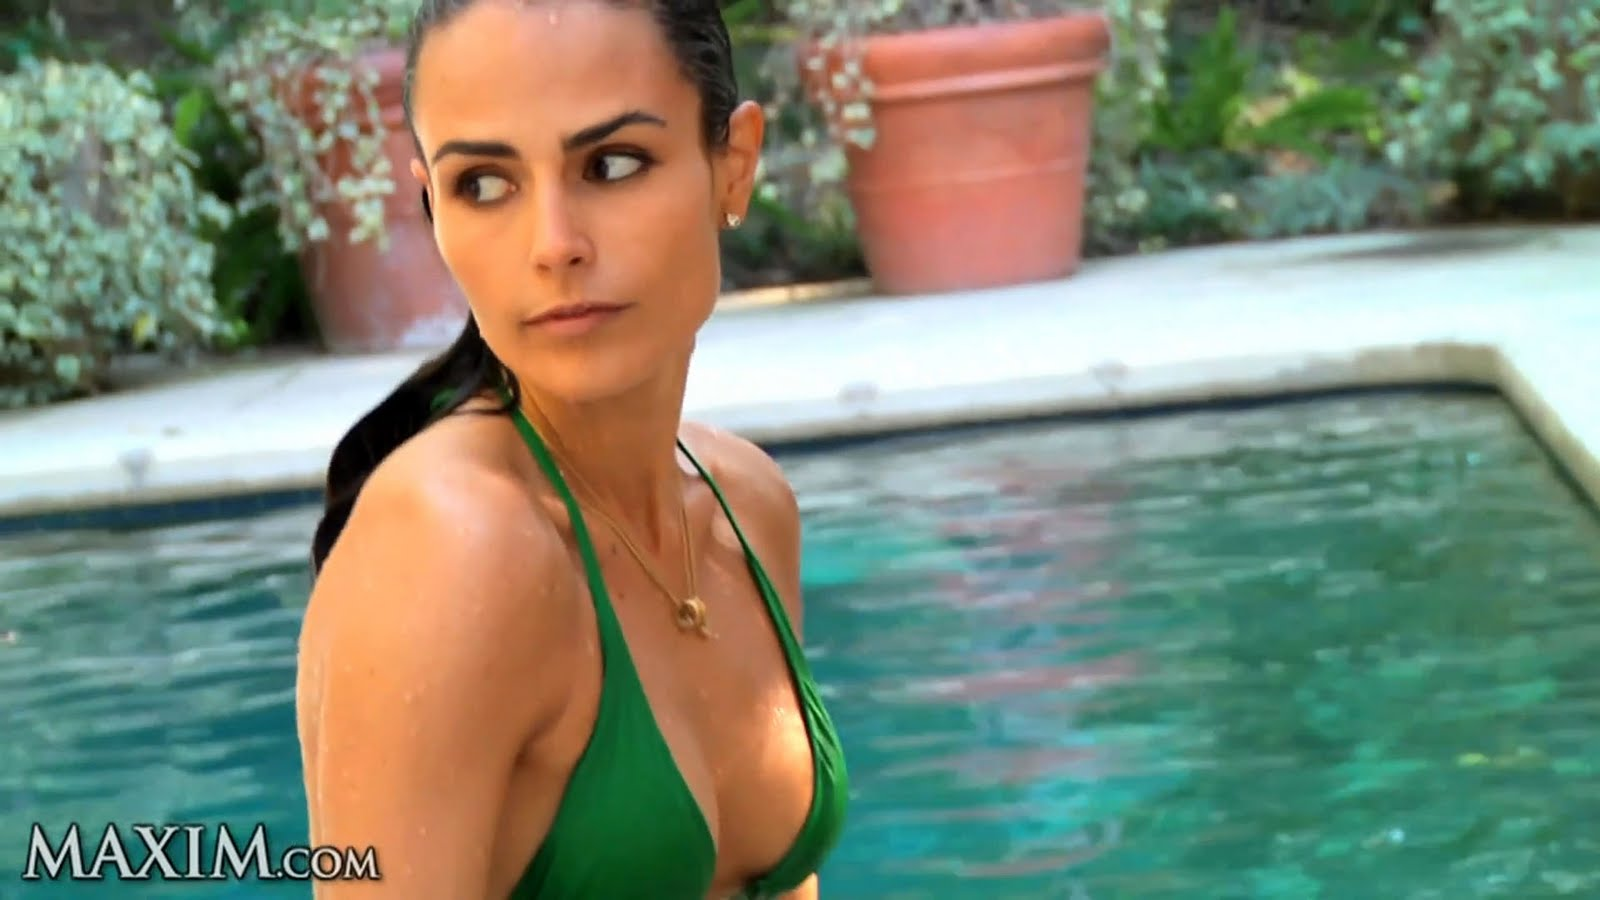 Behind The Scence: Jordana Brewster Photo Shoots For Maxim Magazine